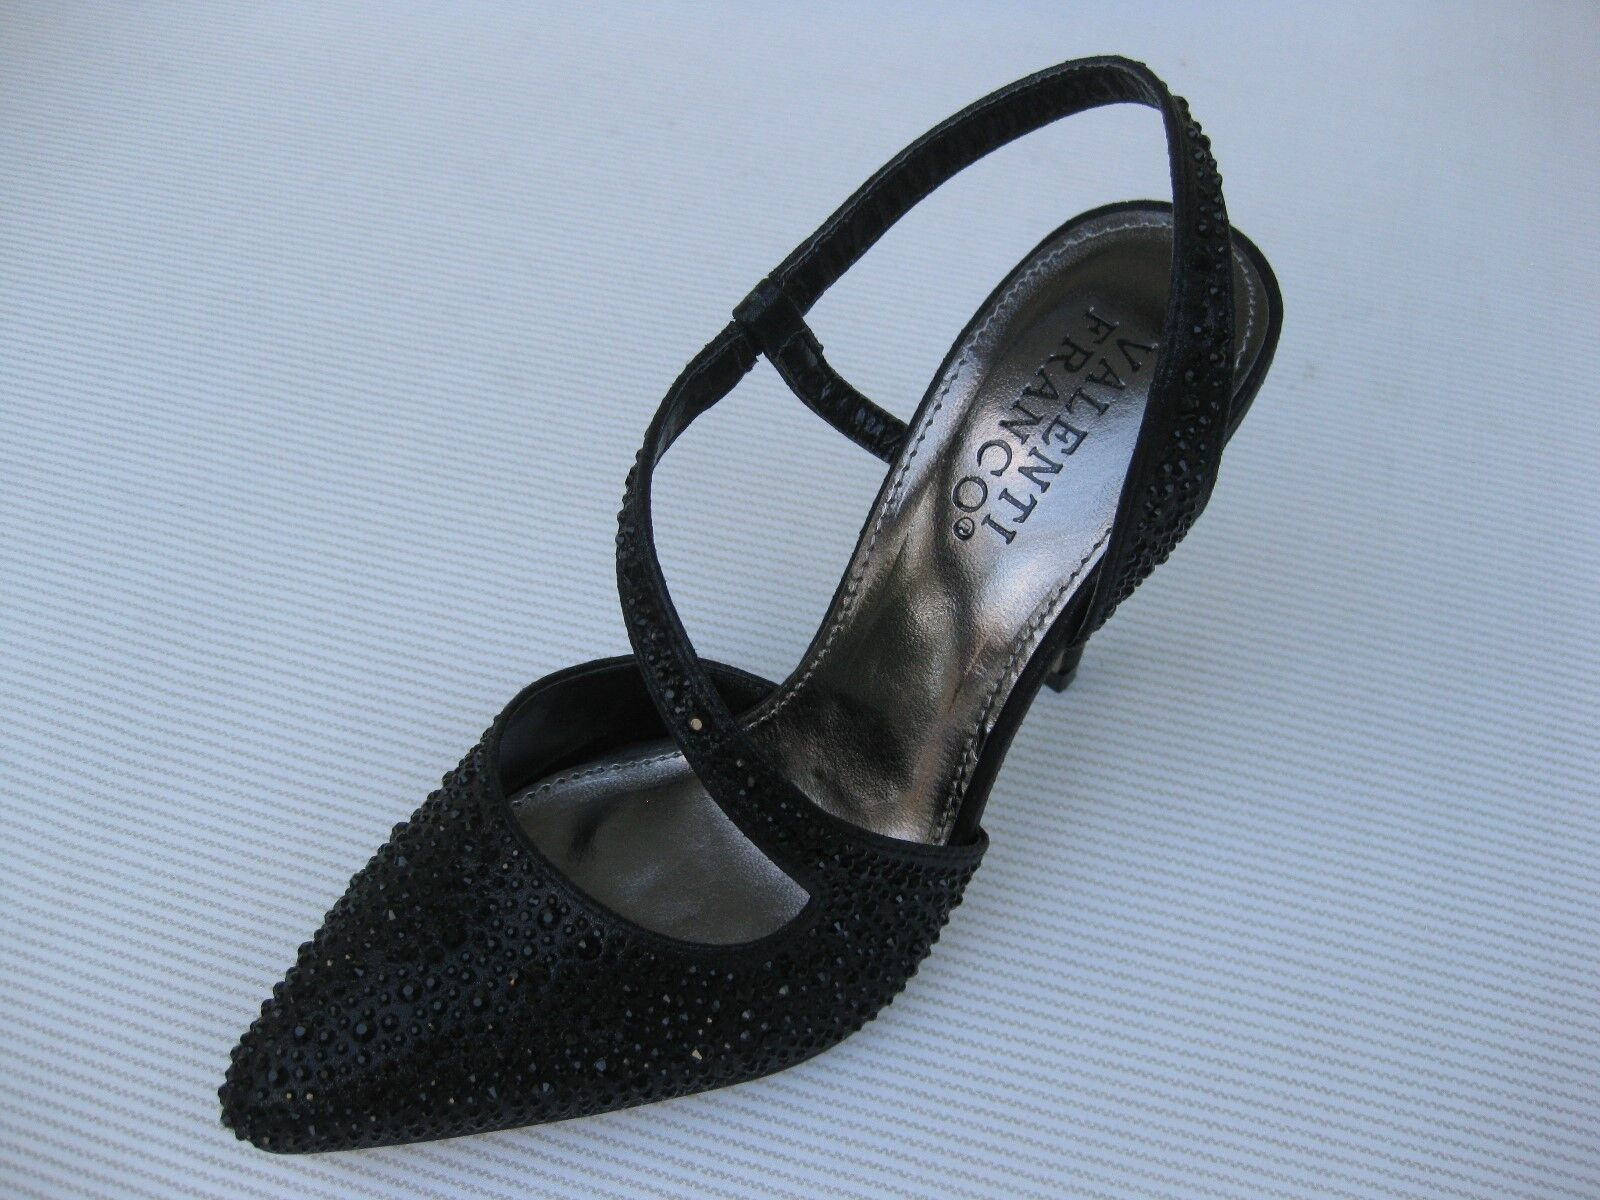 Valenti Franco Sparkle Womens Shoes $60 Moya Black Sparkle Franco Slingback 7 M 47cc2a